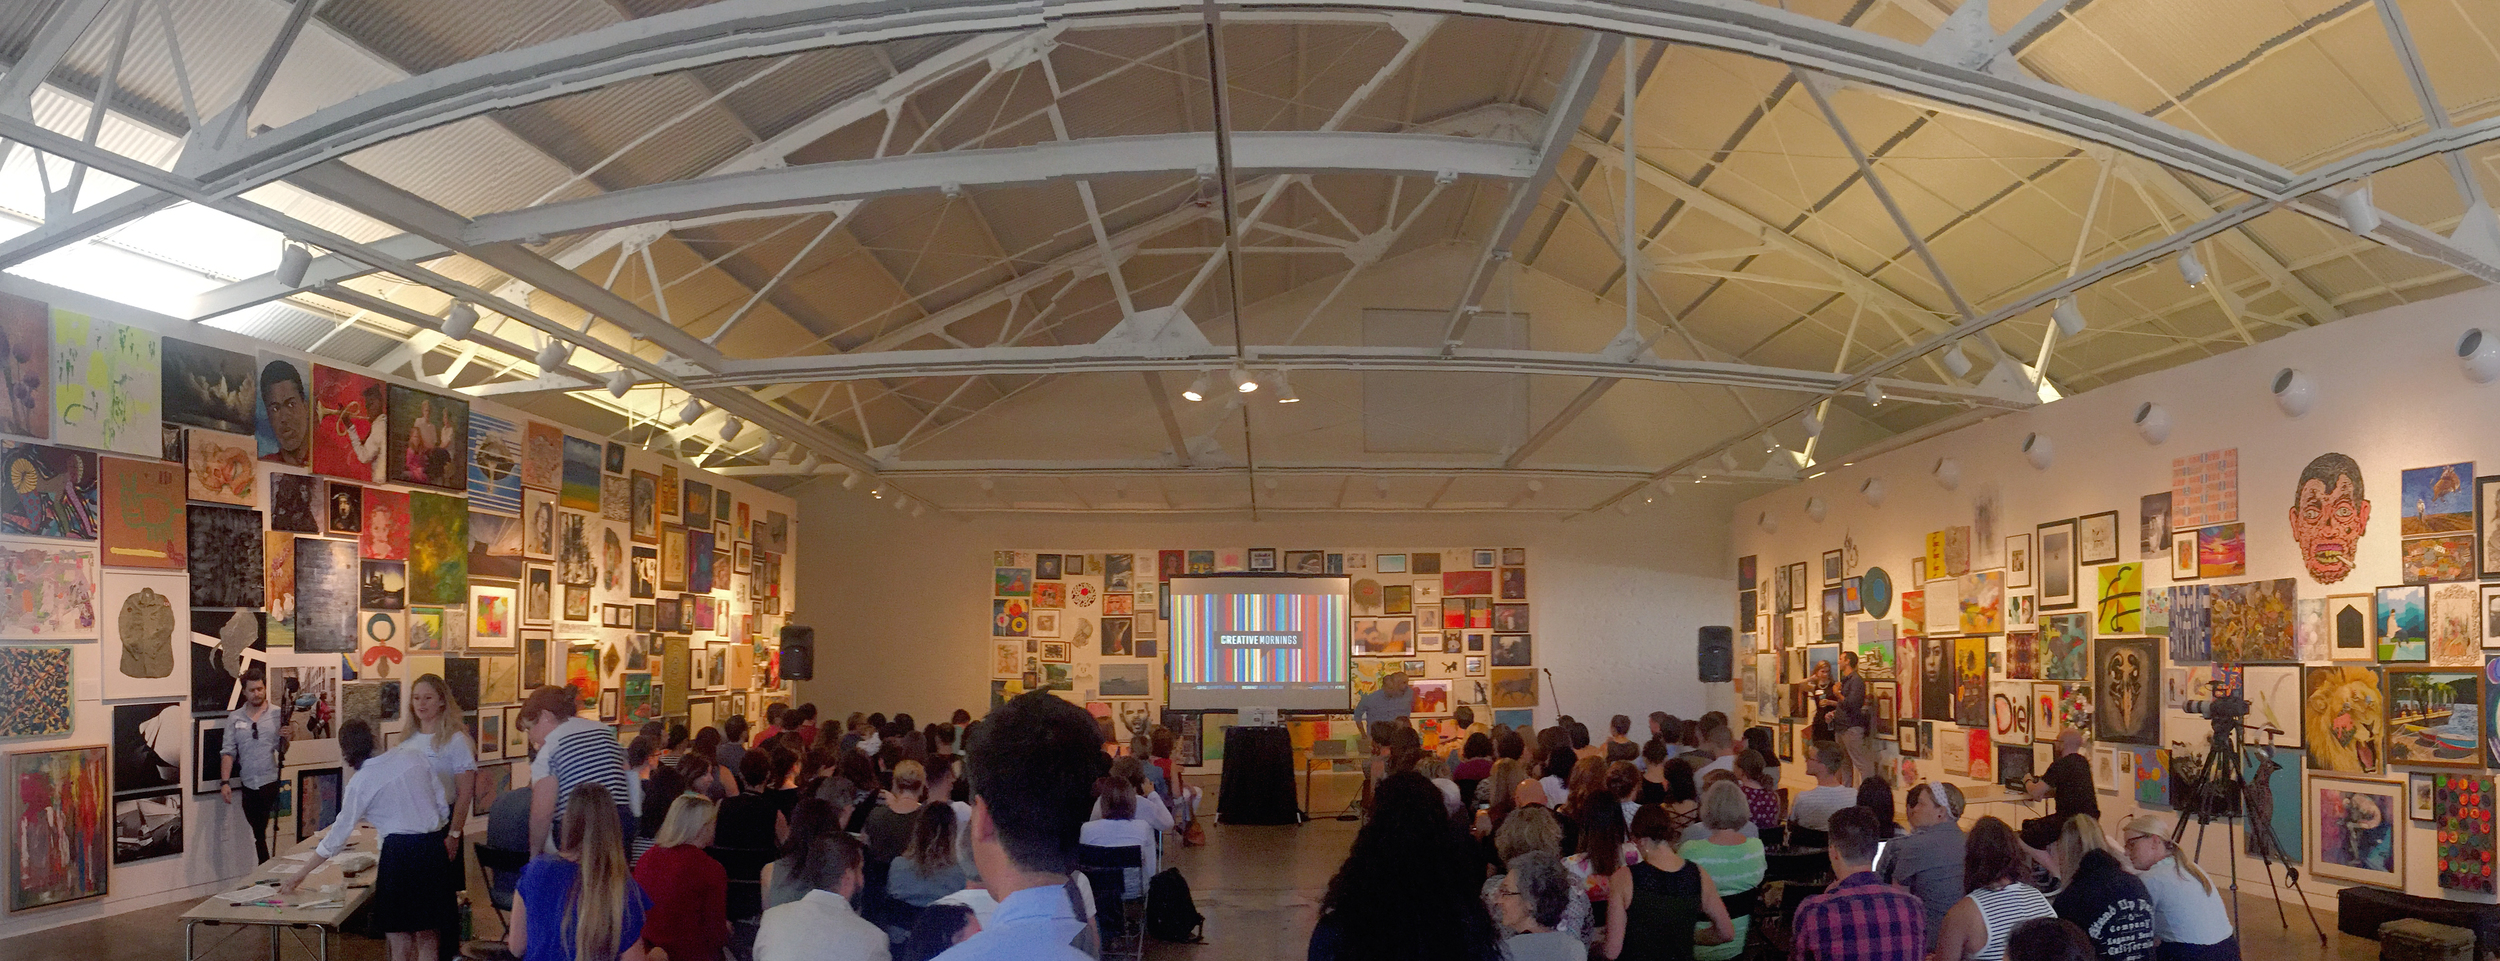 Taken via iPhone pano at  Creative Mornings RDU ...amazing group, you should totally check it out.